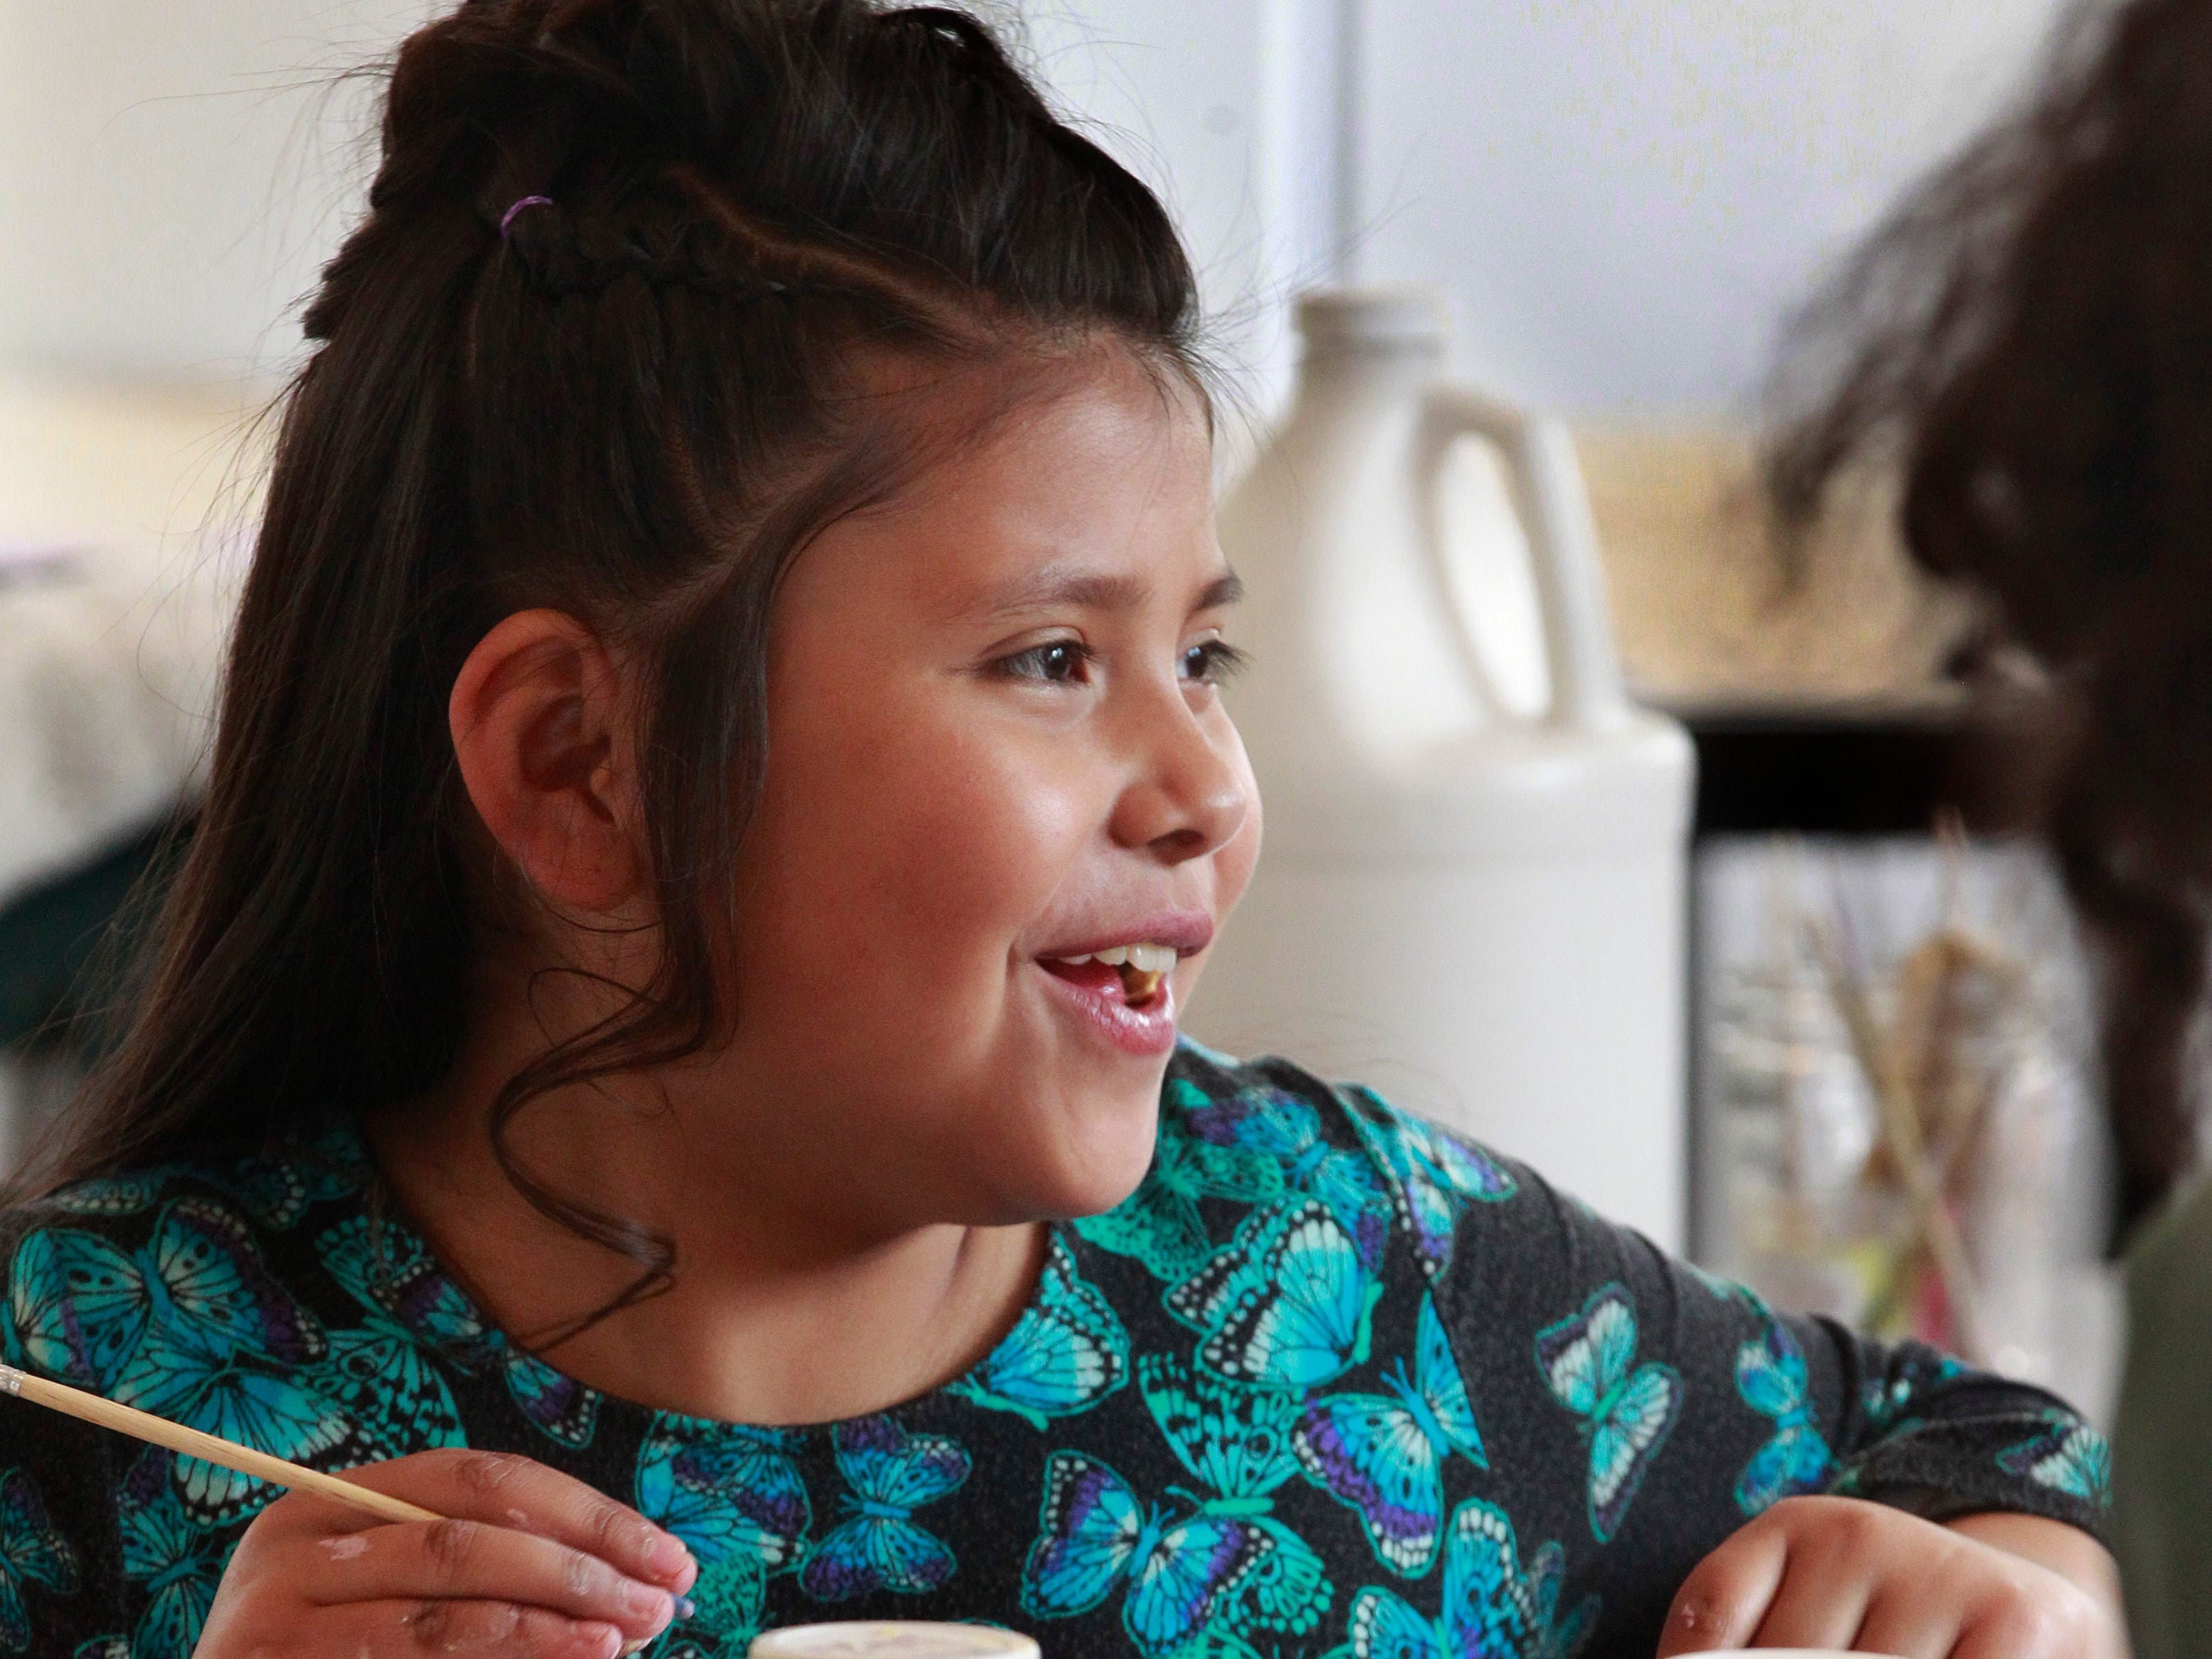 Yazmin Dominguez, 9, is all smiles while working on a tile at the 26th Street Project for an upcoming art installation.  Lori Gramling started the art program to engage young children in ceramic arts.